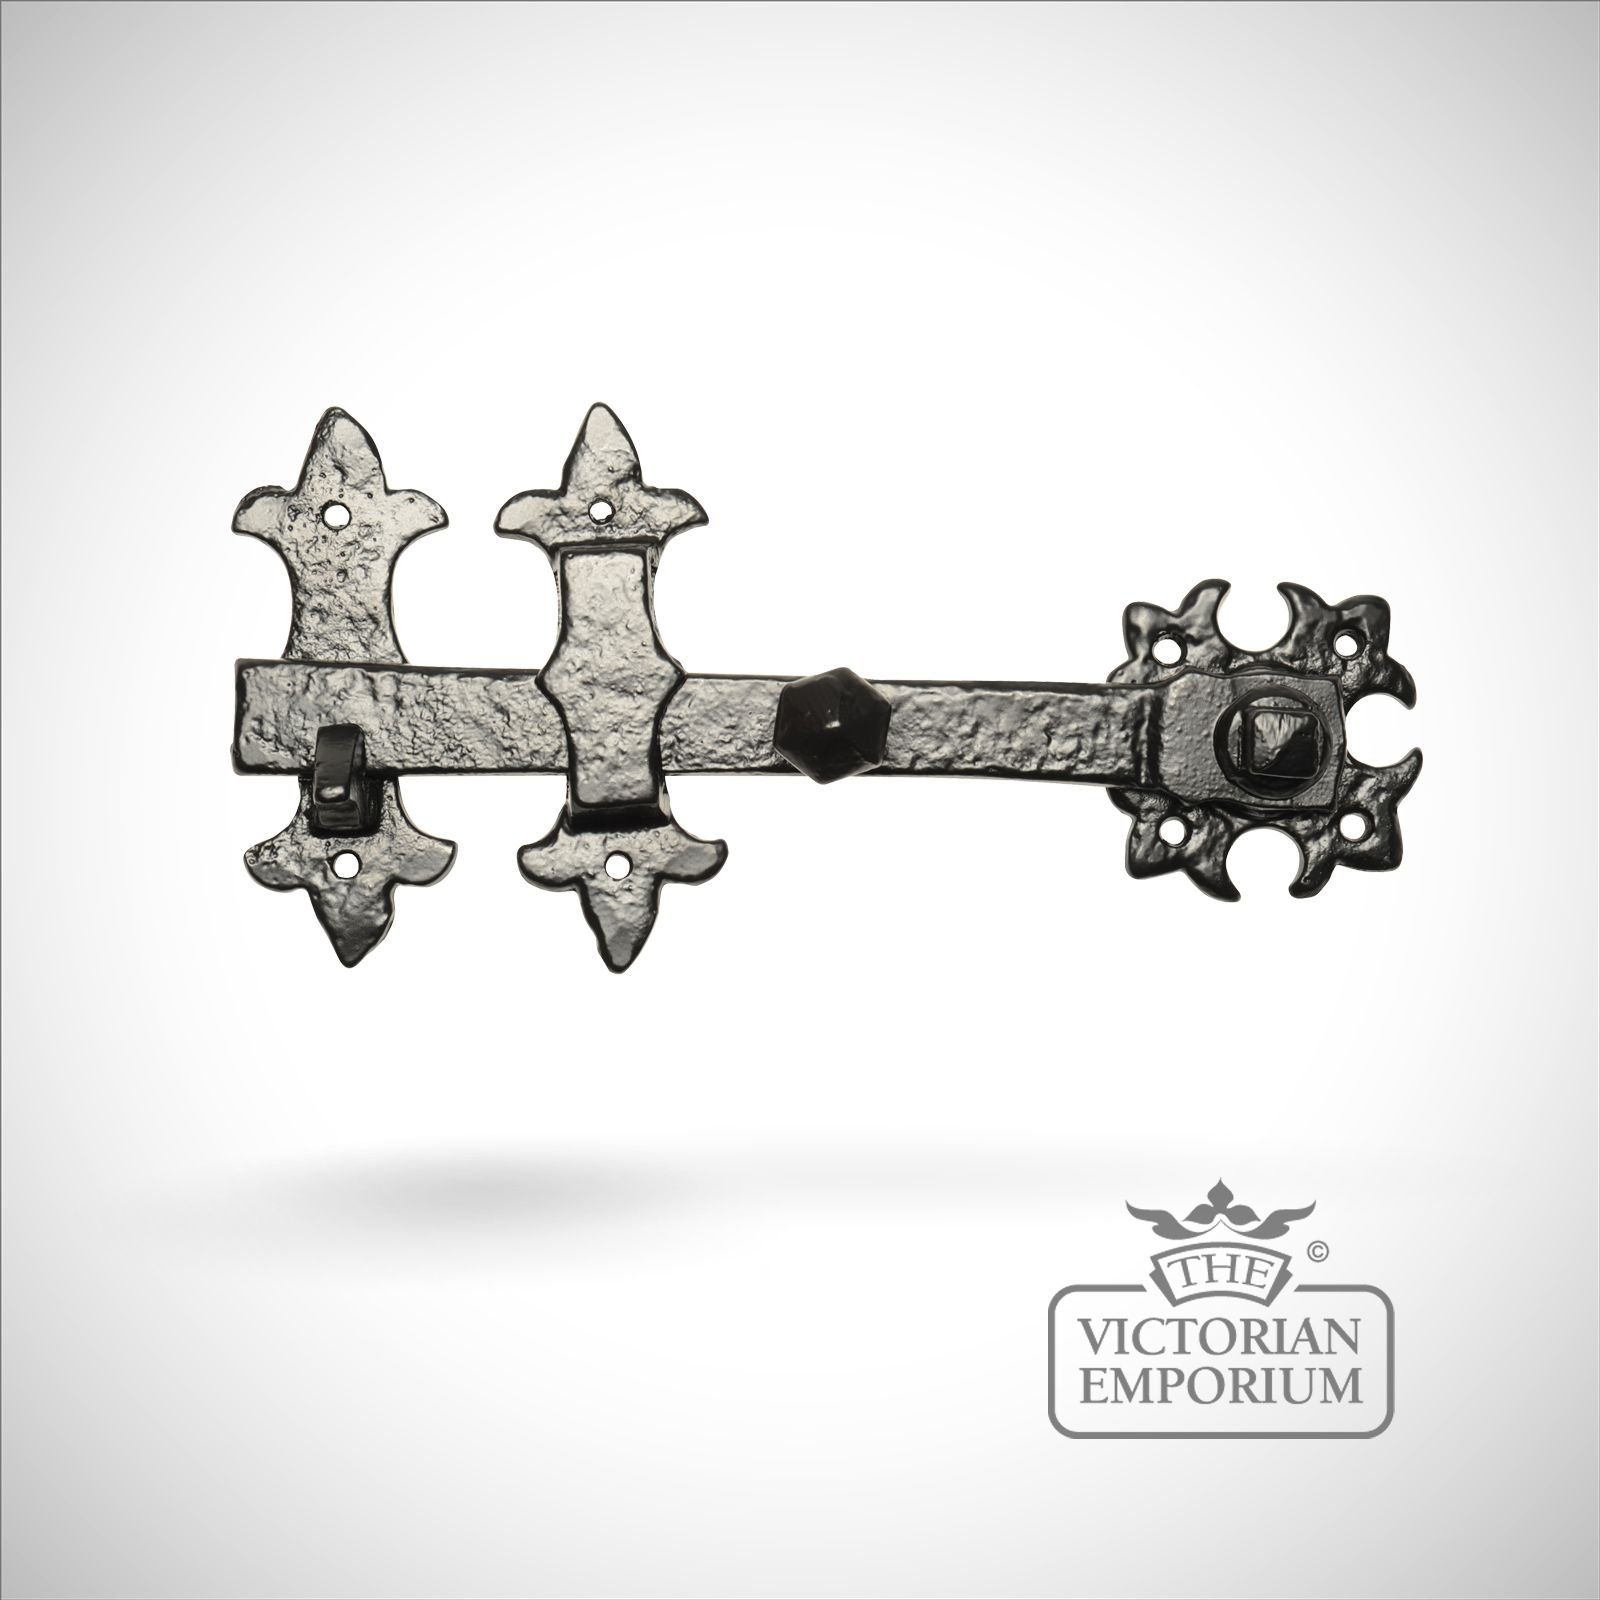 Black Iron Handcrafted Decorative Latch Latches